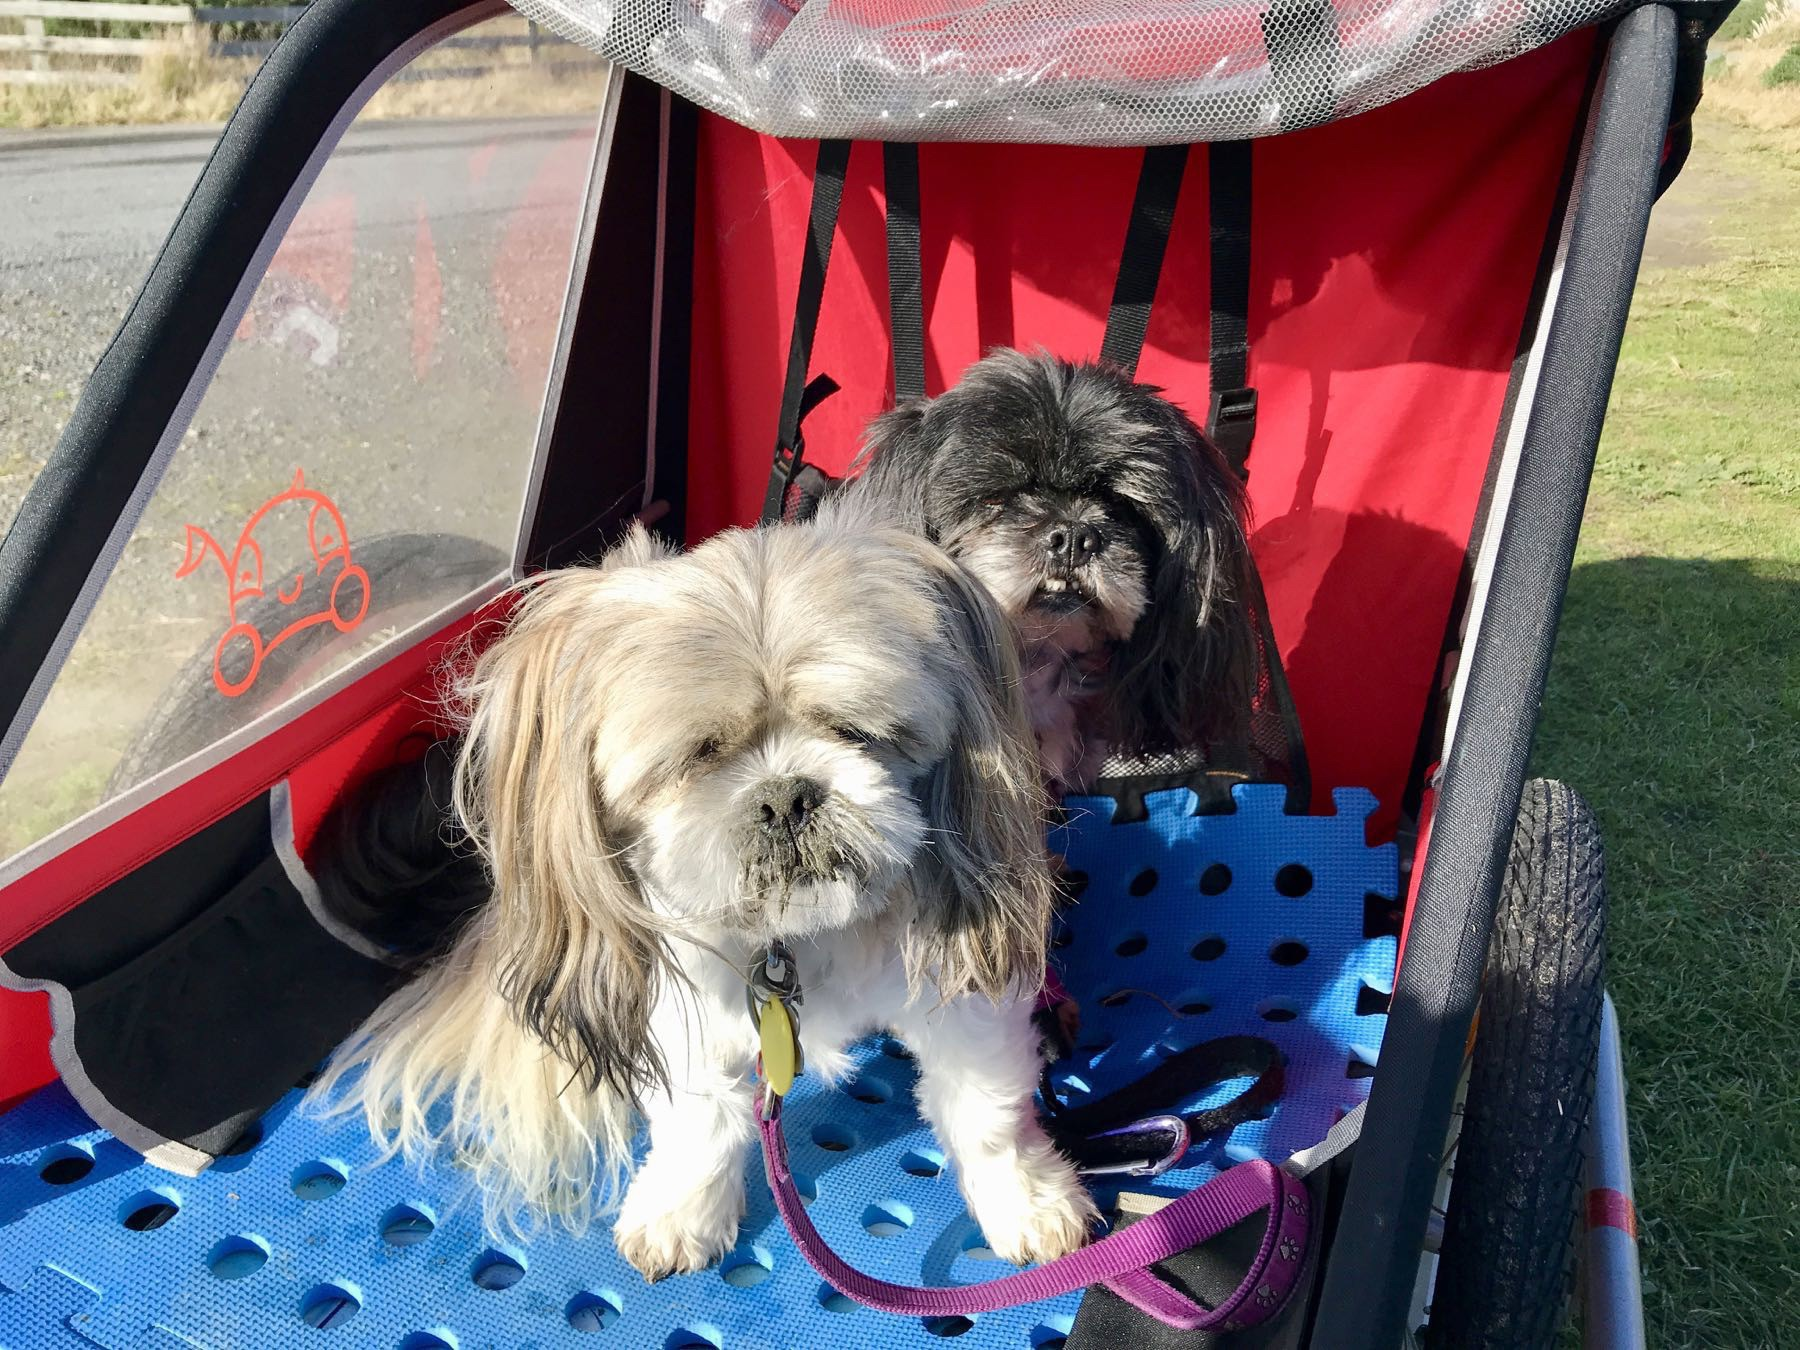 Two small dogs in a bike trailer.